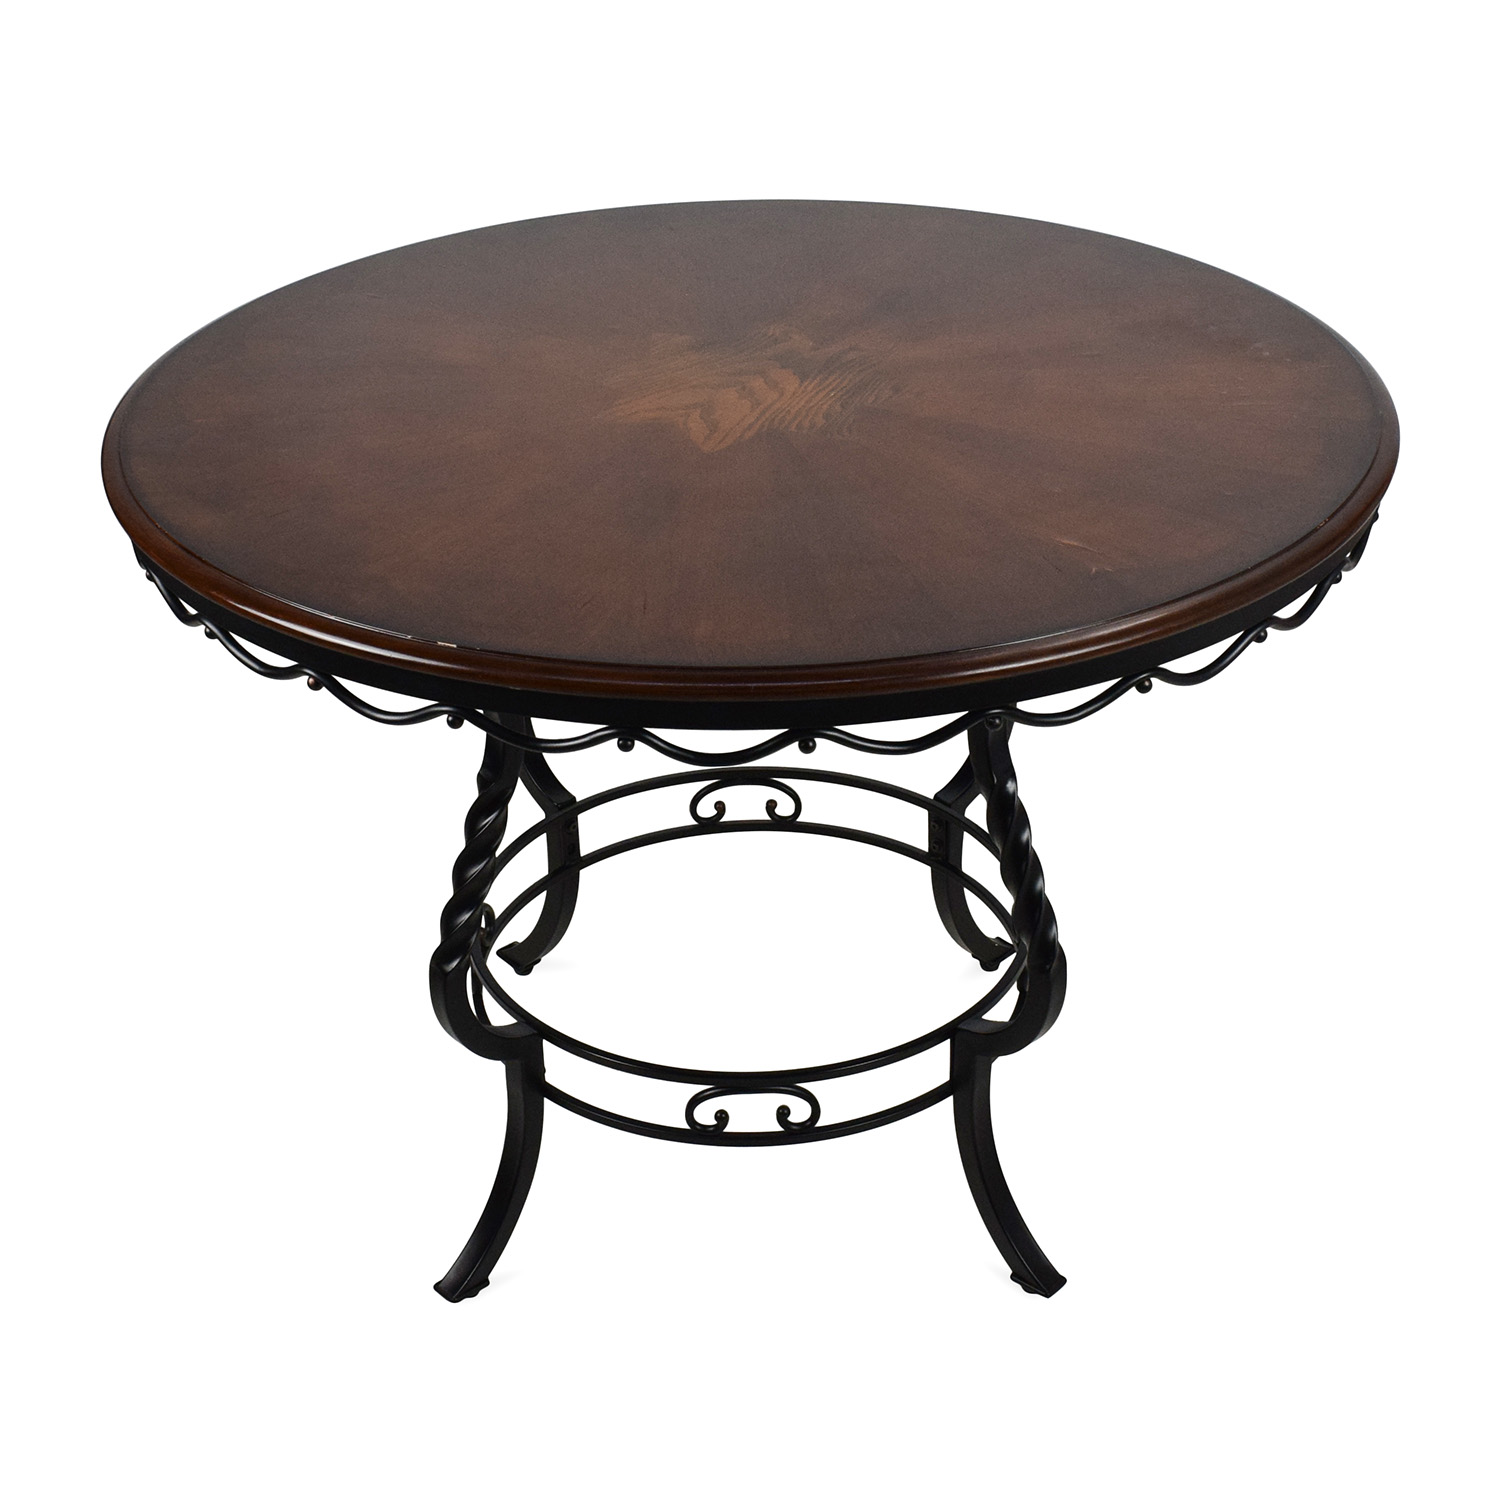 100 Dining Room Furniture Ashley Porter 697 By  : ashley nola round dining table from 45.76.66.238 size 1500 x 1500 jpeg 267kB